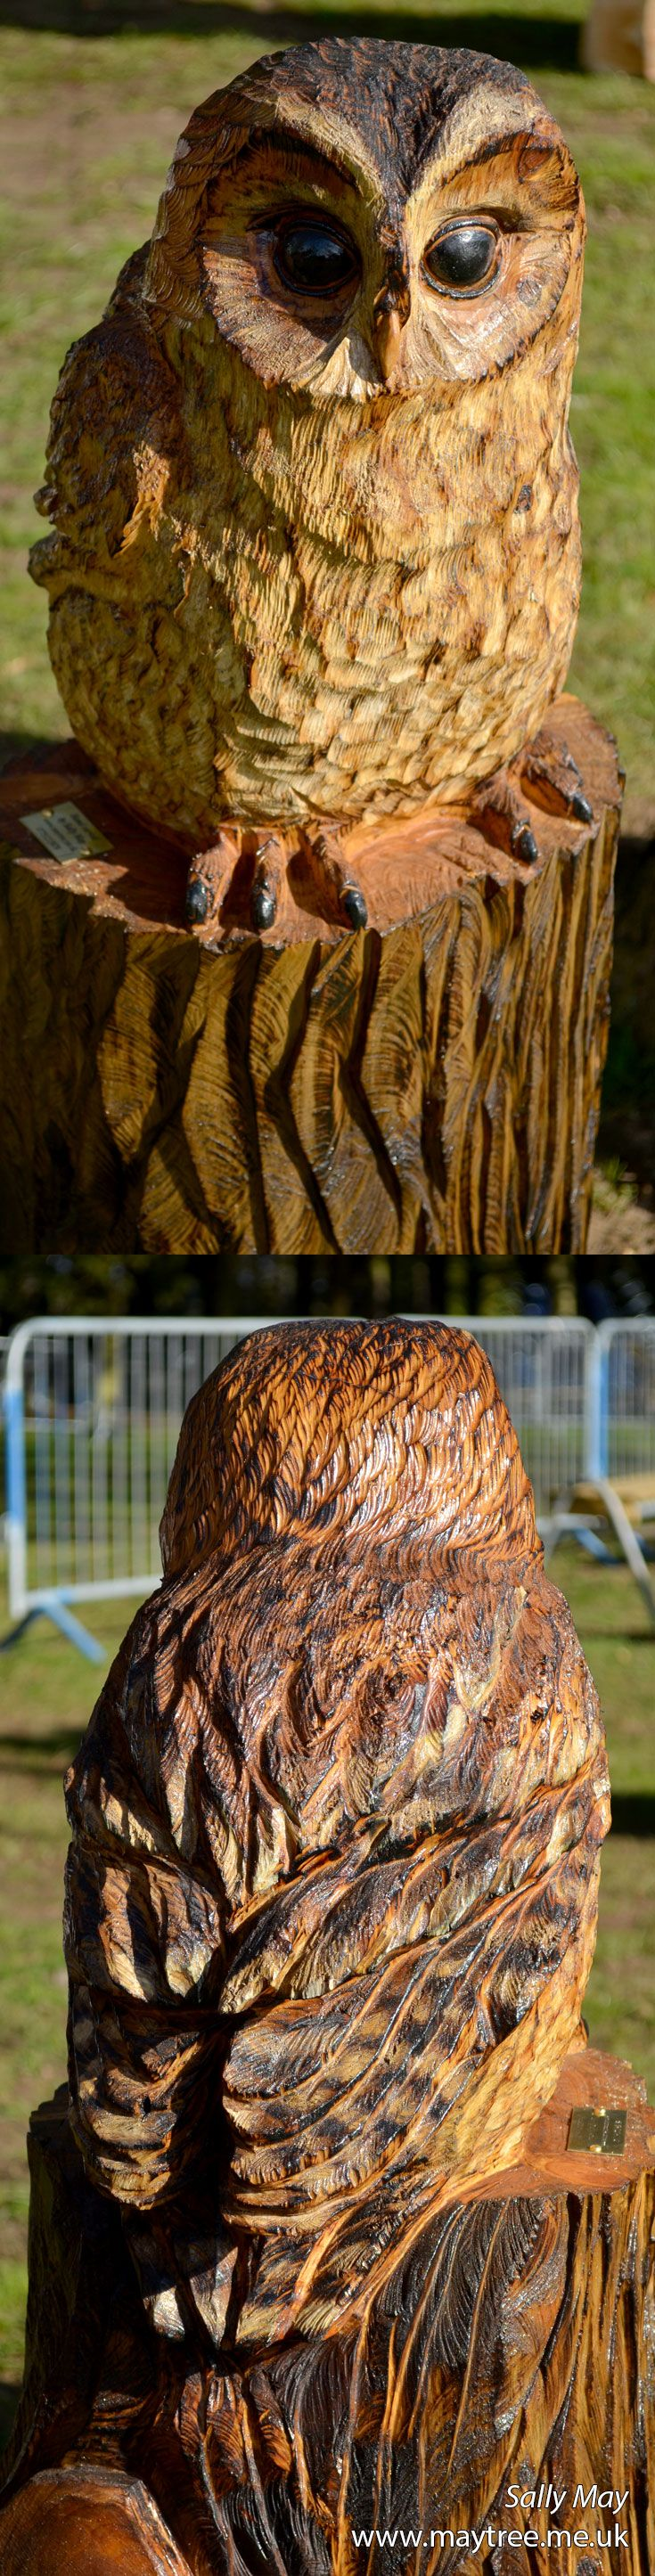 Tawny owl chainsaw carving by Sally May                                                                                                                                                                                 More